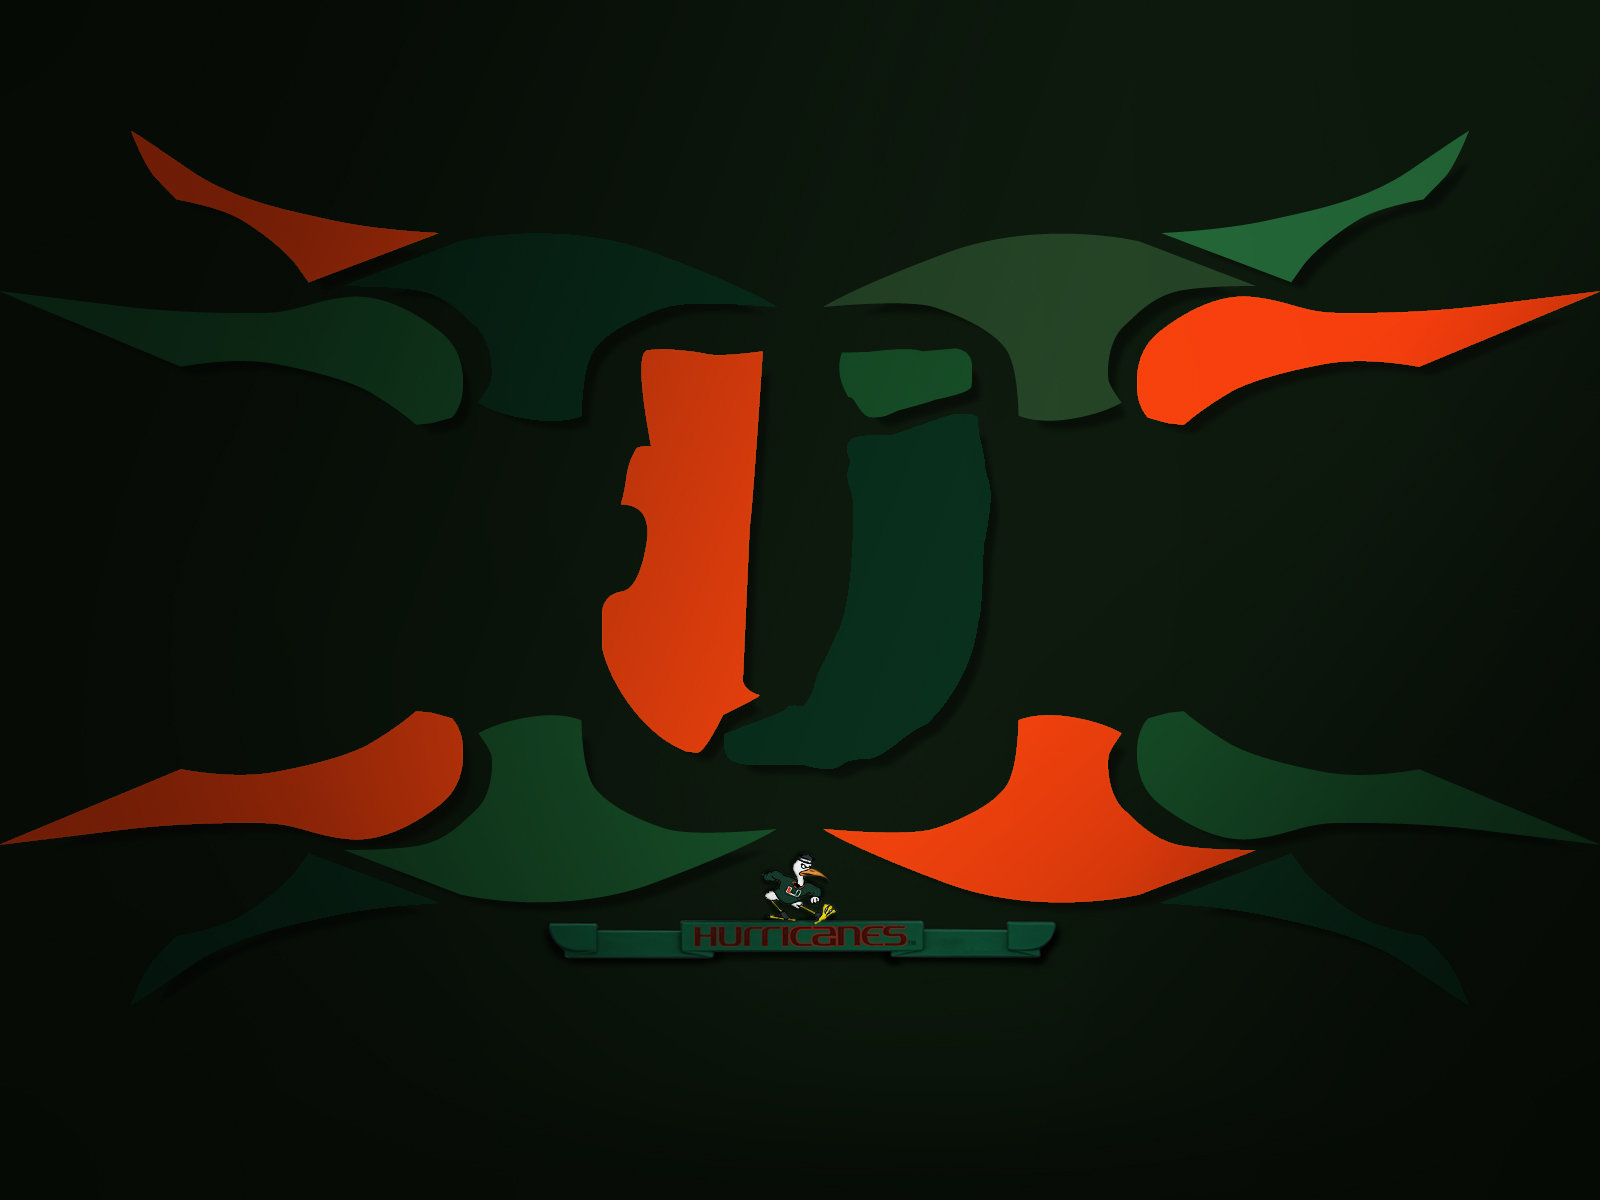 Miami Hurricanes revised by jso037 1600x1200